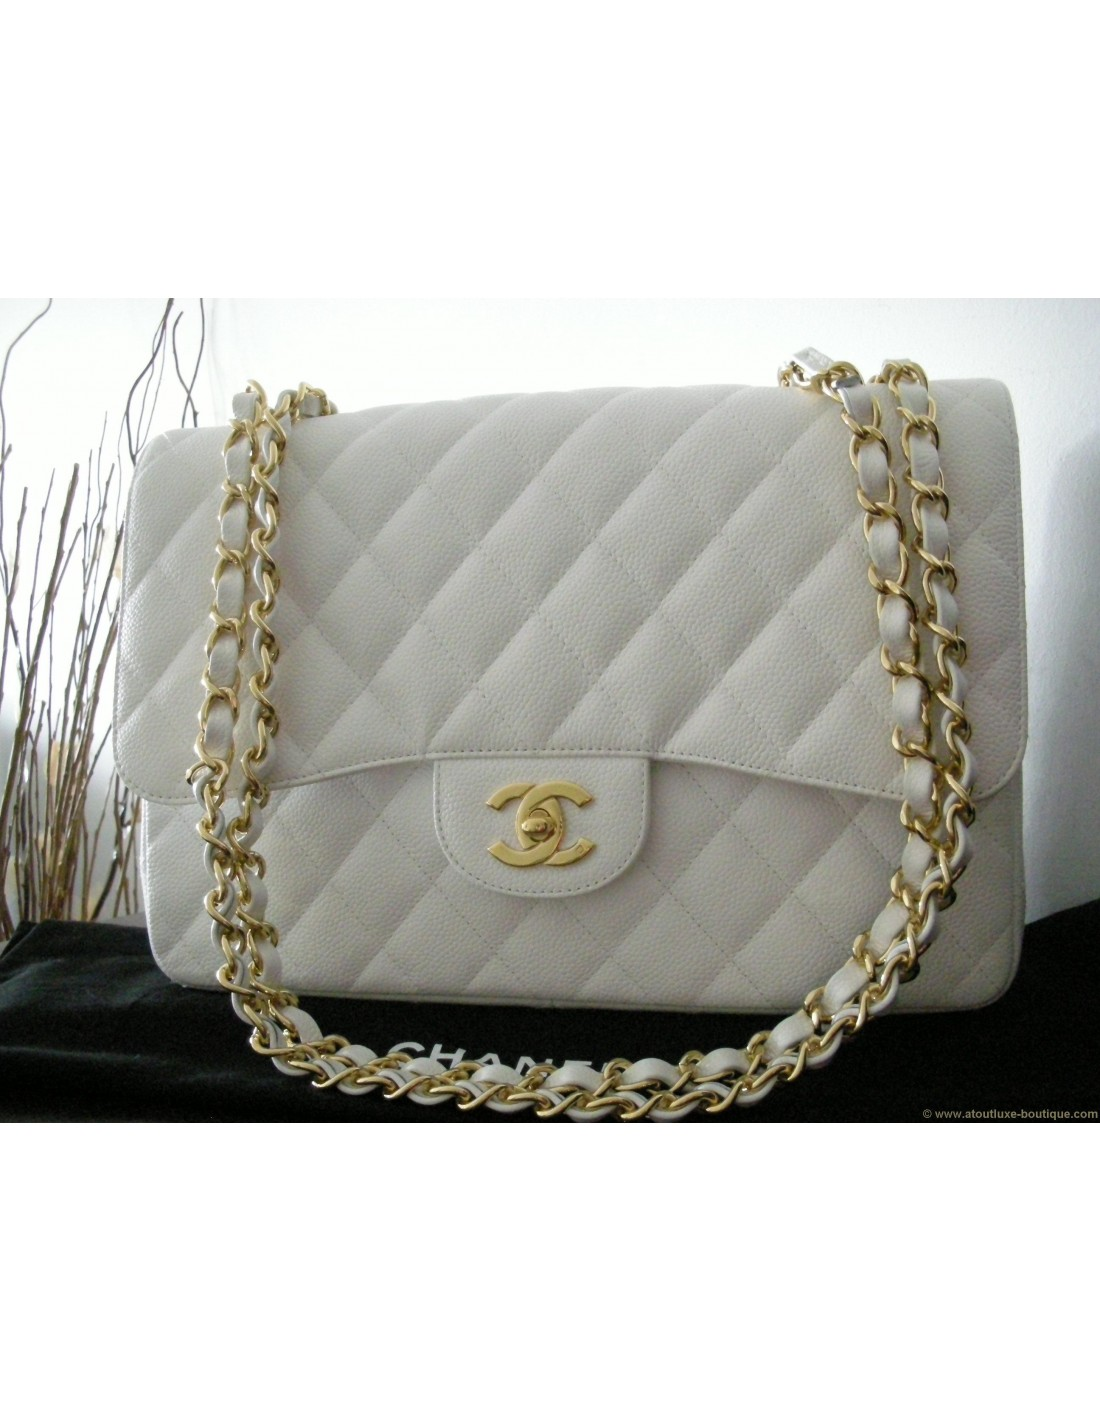 Sac chanel mademoiselle blanc grand modele for Sac chanel interieur